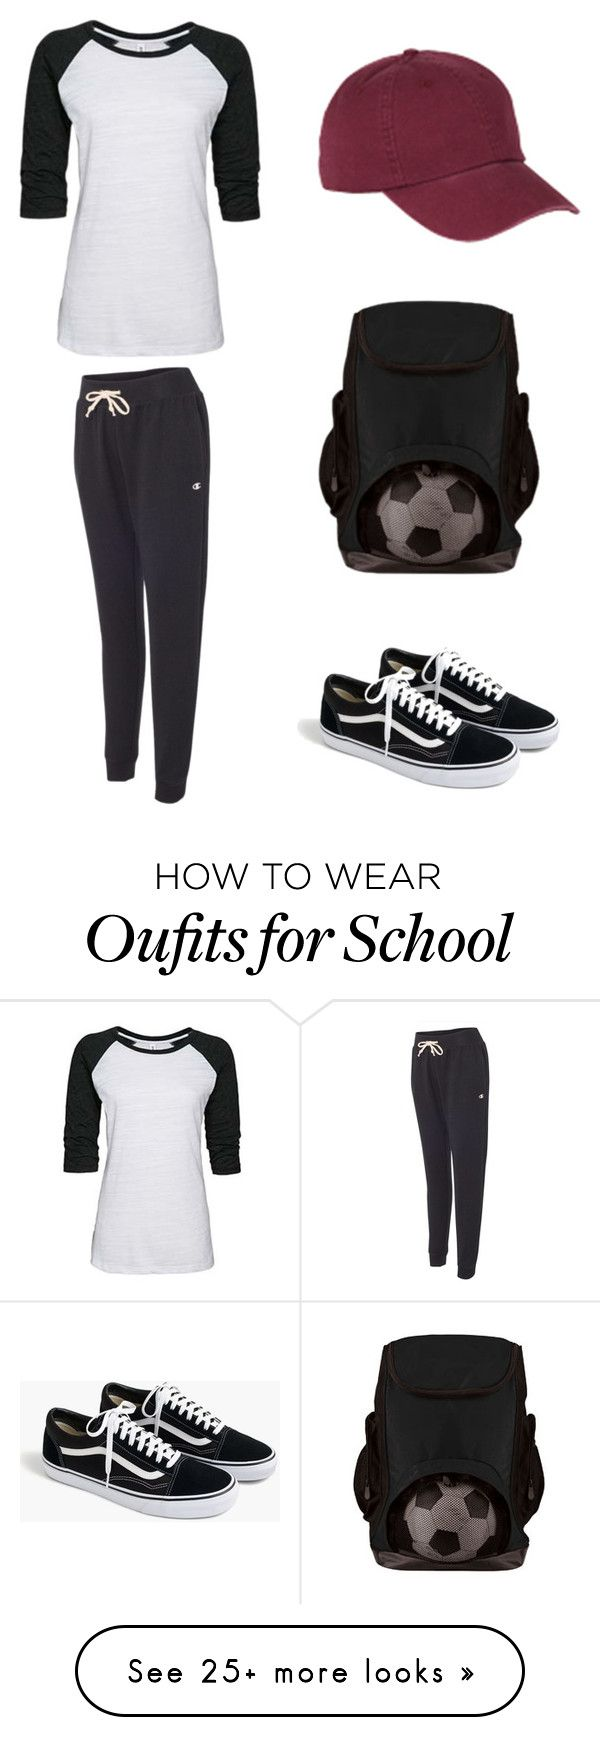 """""""School Sports Outfit"""" by nyfifth on Polyvore featuring J.Crew, BackToSchool, schoolactivewear and schoolsportsapparel"""